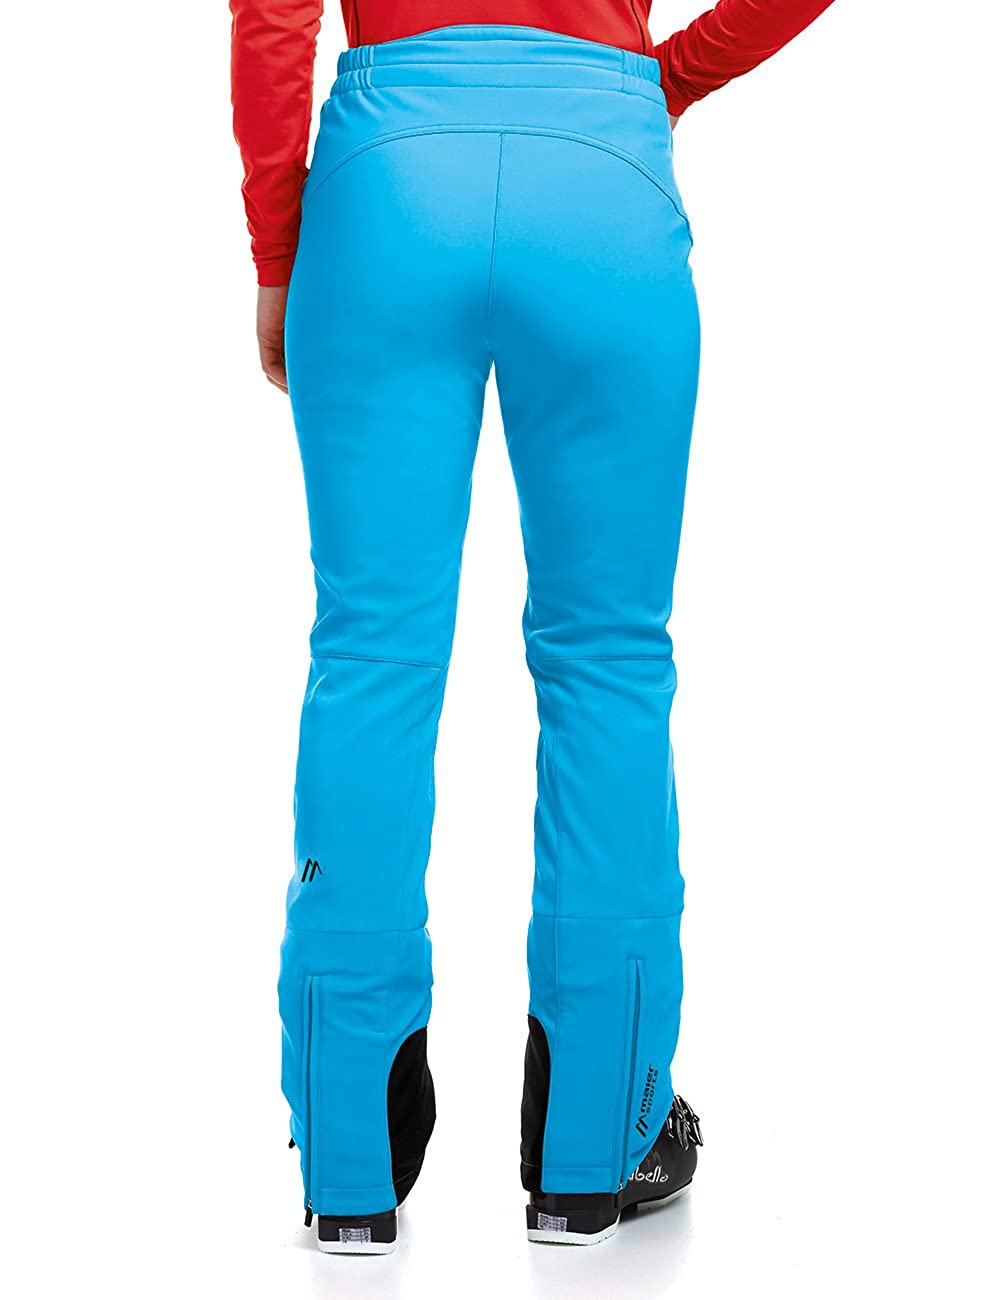 Pantaloni in Softshell Donna maier sports Marie